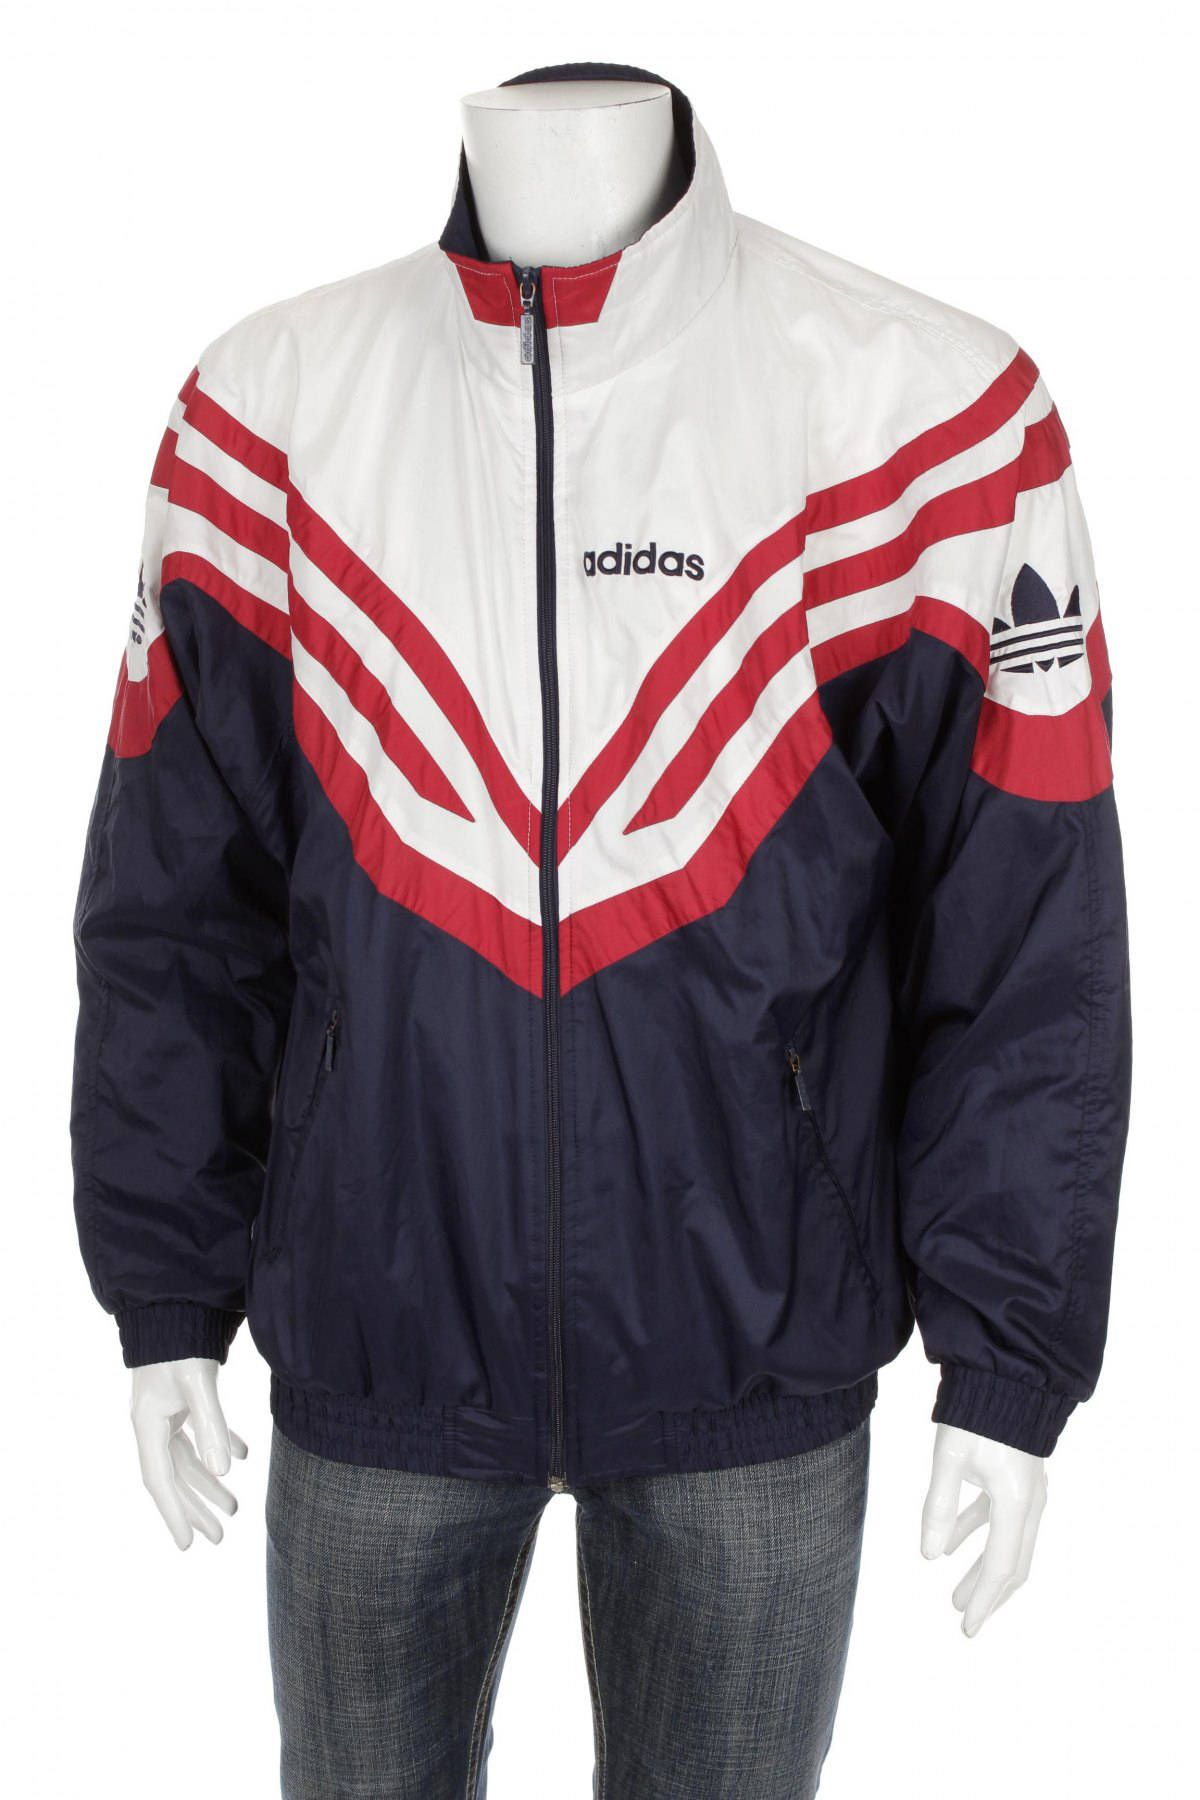 15473d6861f0 Vintage 90s Adidas Trefoil Windbreaker Tracksuit top jacket Blue Red White  Size L D7 by VapeoVintage on Etsy